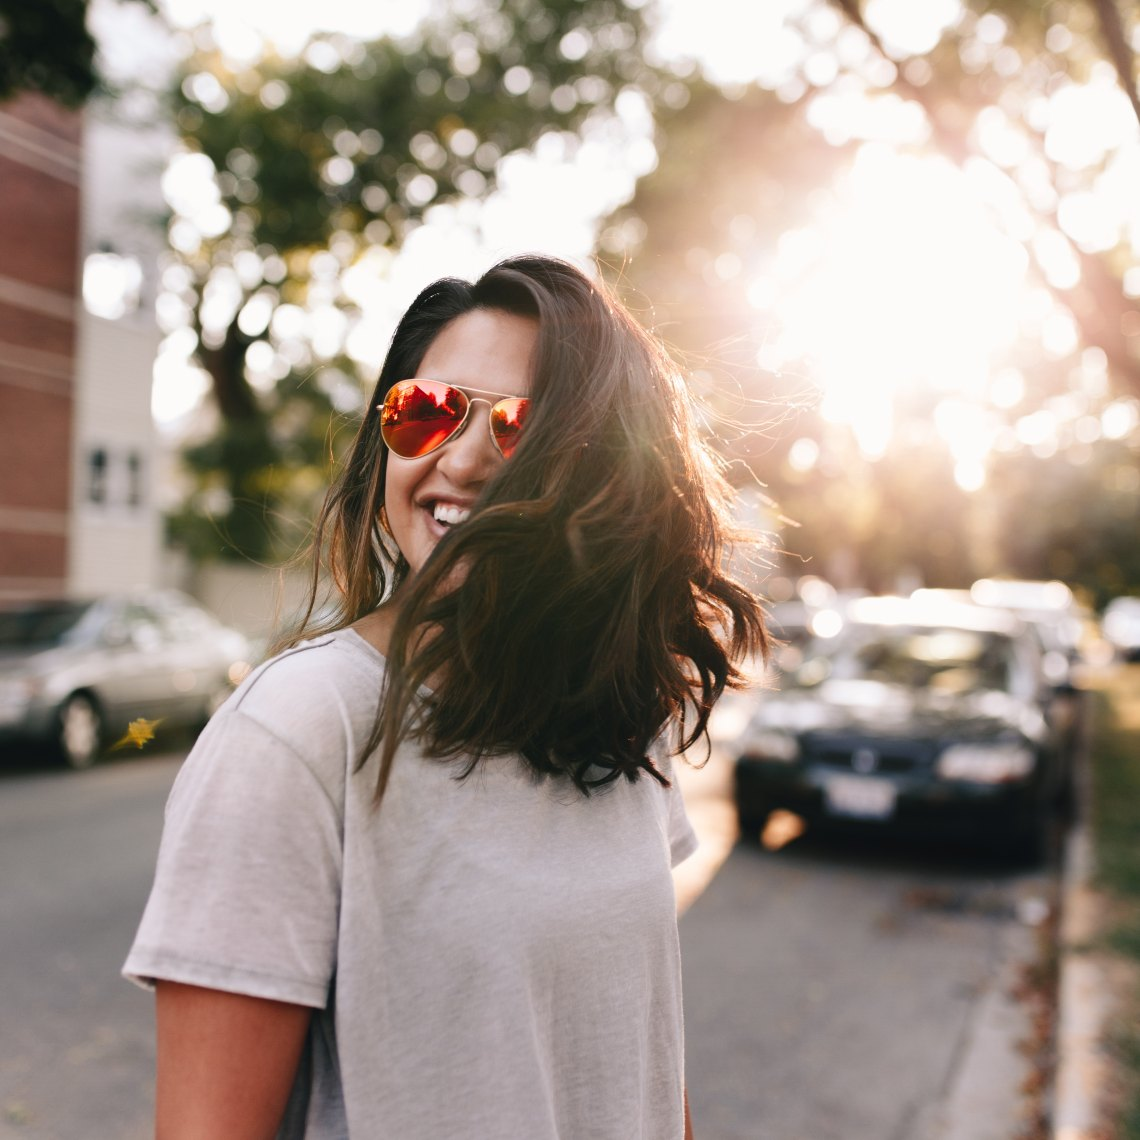 5 Lessons You'll On Learn By Living As A Single Girl